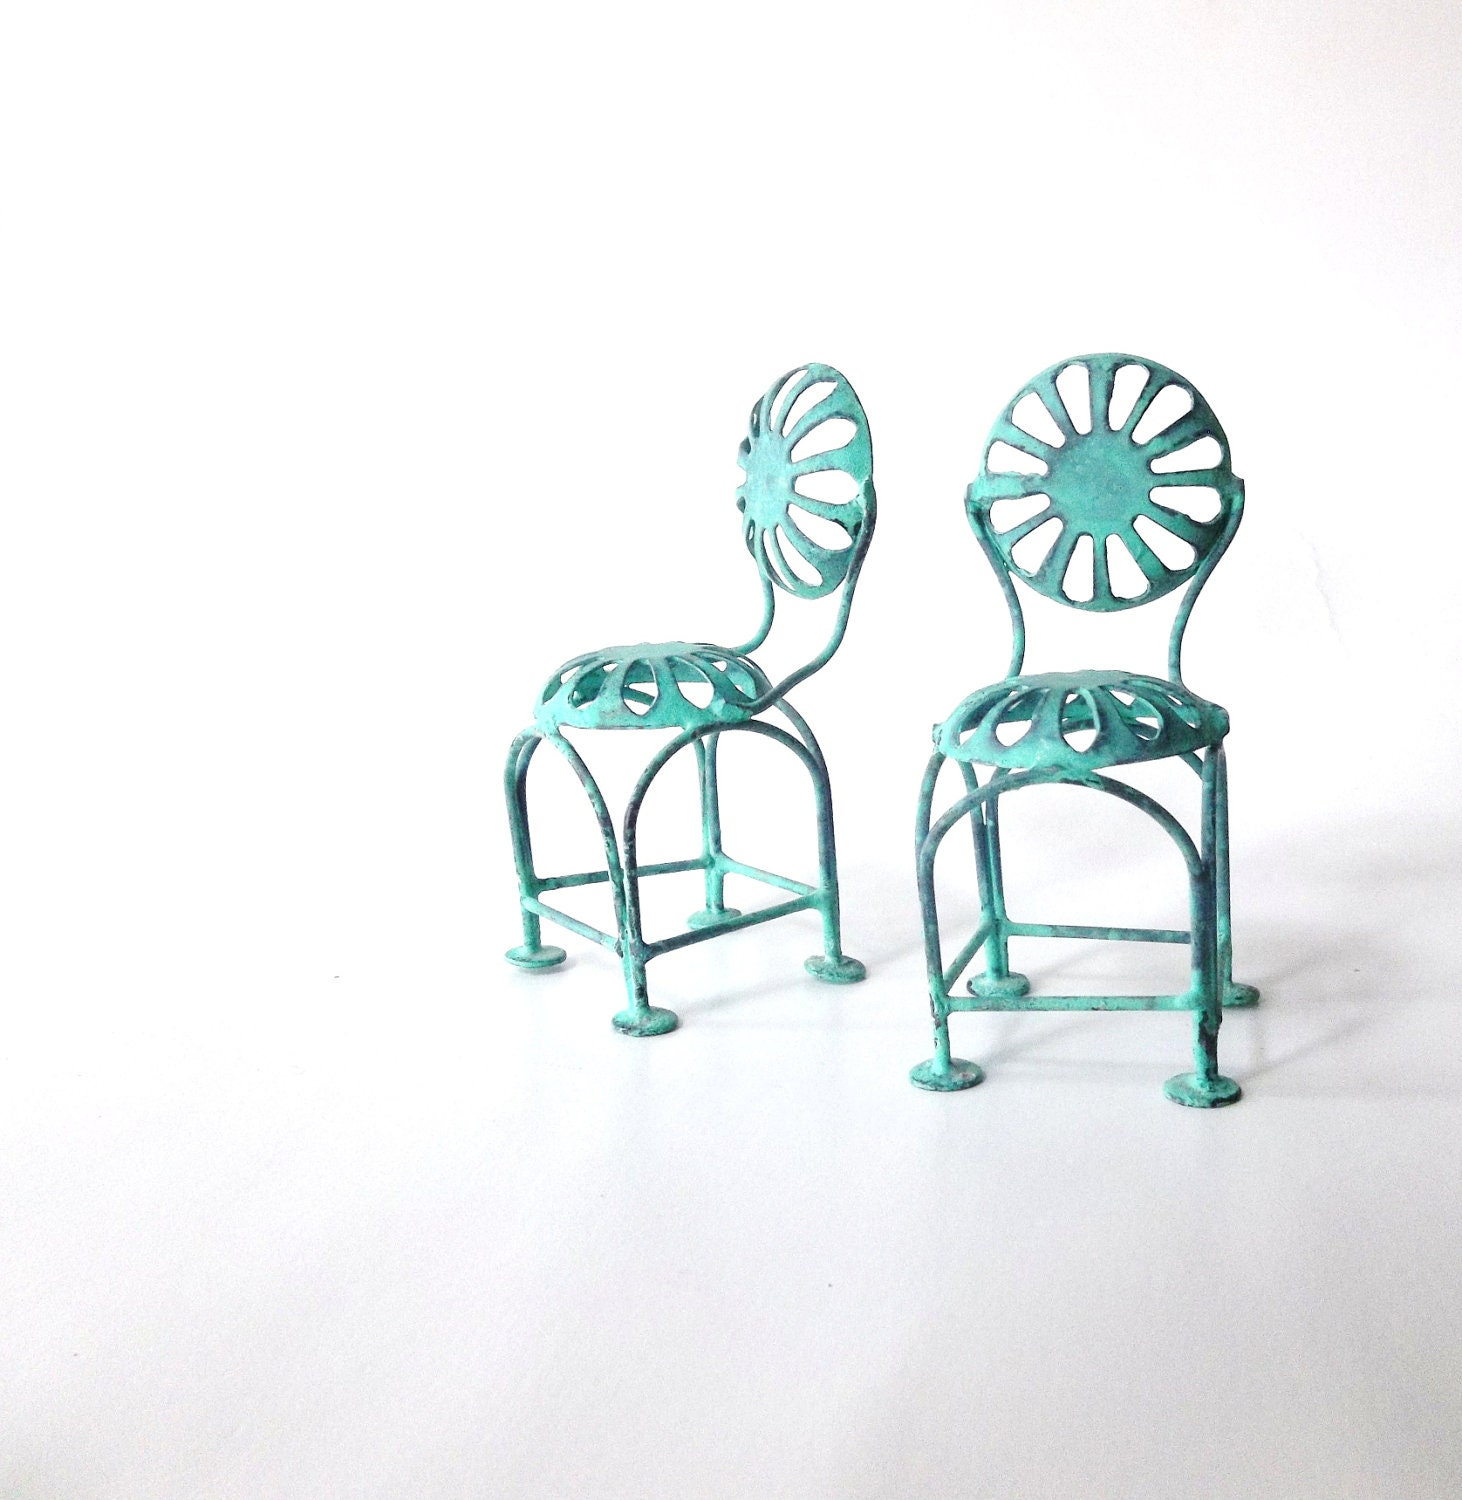 Bistro Cafe Doll House Chairs. Teal Aqua. Miniature Wrought iron Beach Chairs. Photography Print . Home Decor Wall art - 3vintagehearts